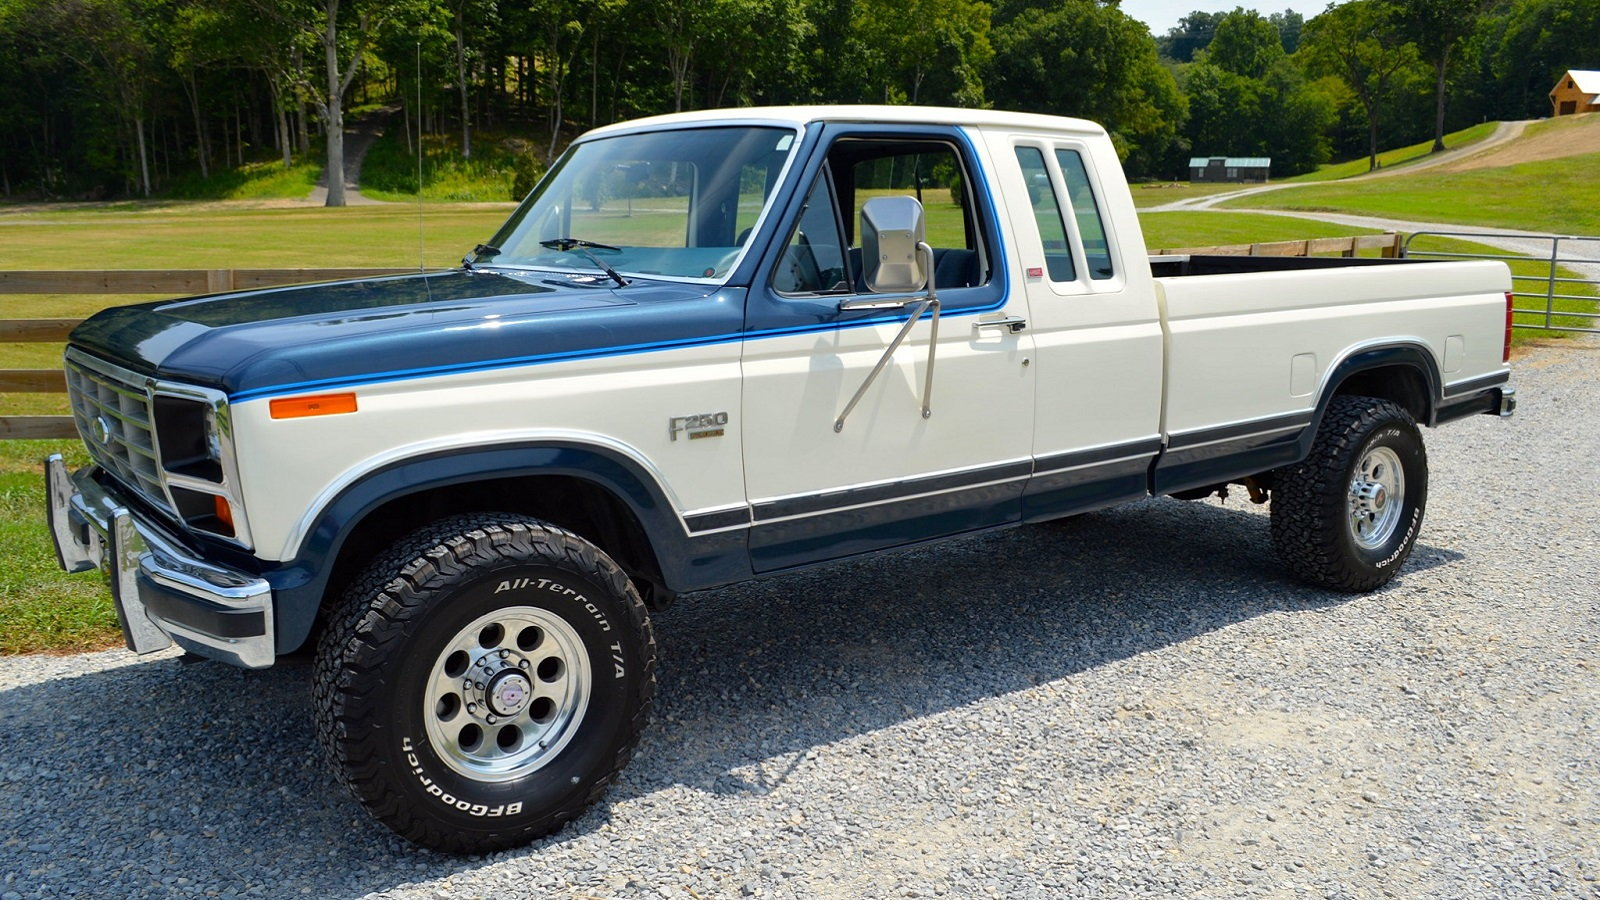 1986 Ford F-250 Has Found the Fountain of Youth